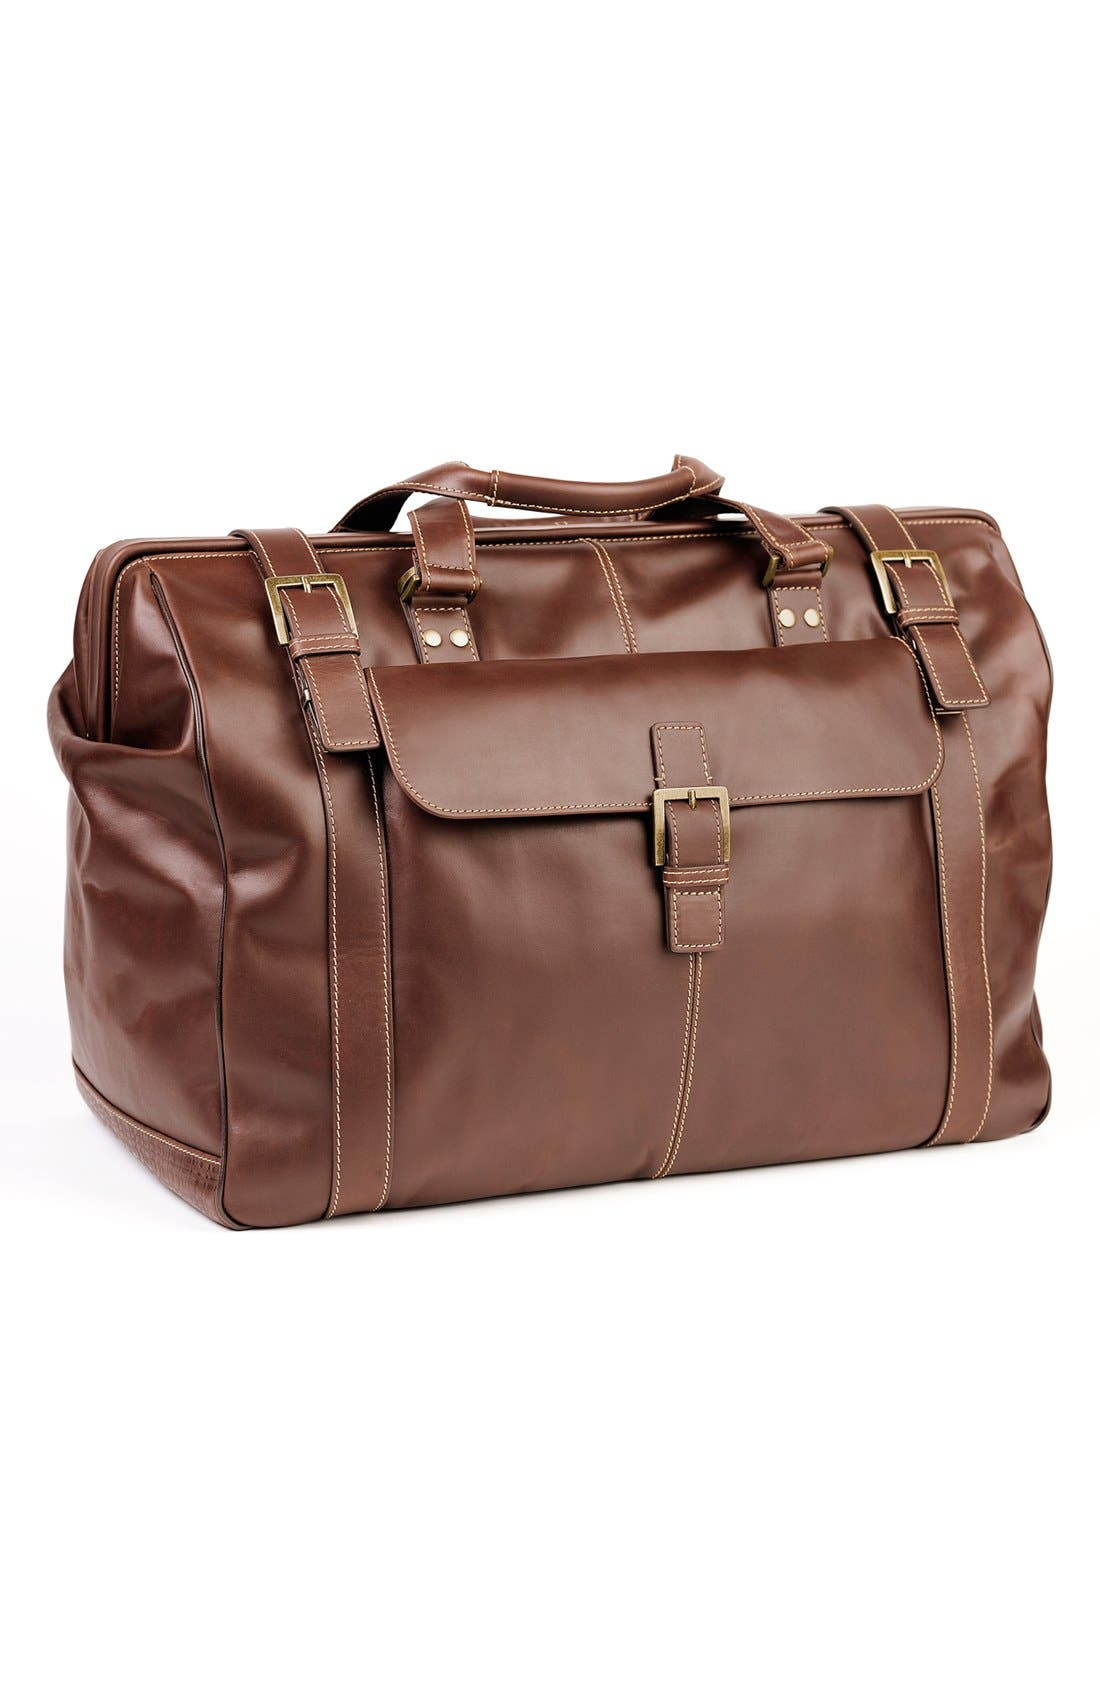 'Bryant' Duffel Bag,                             Main thumbnail 1, color,                             Antique Mahogany